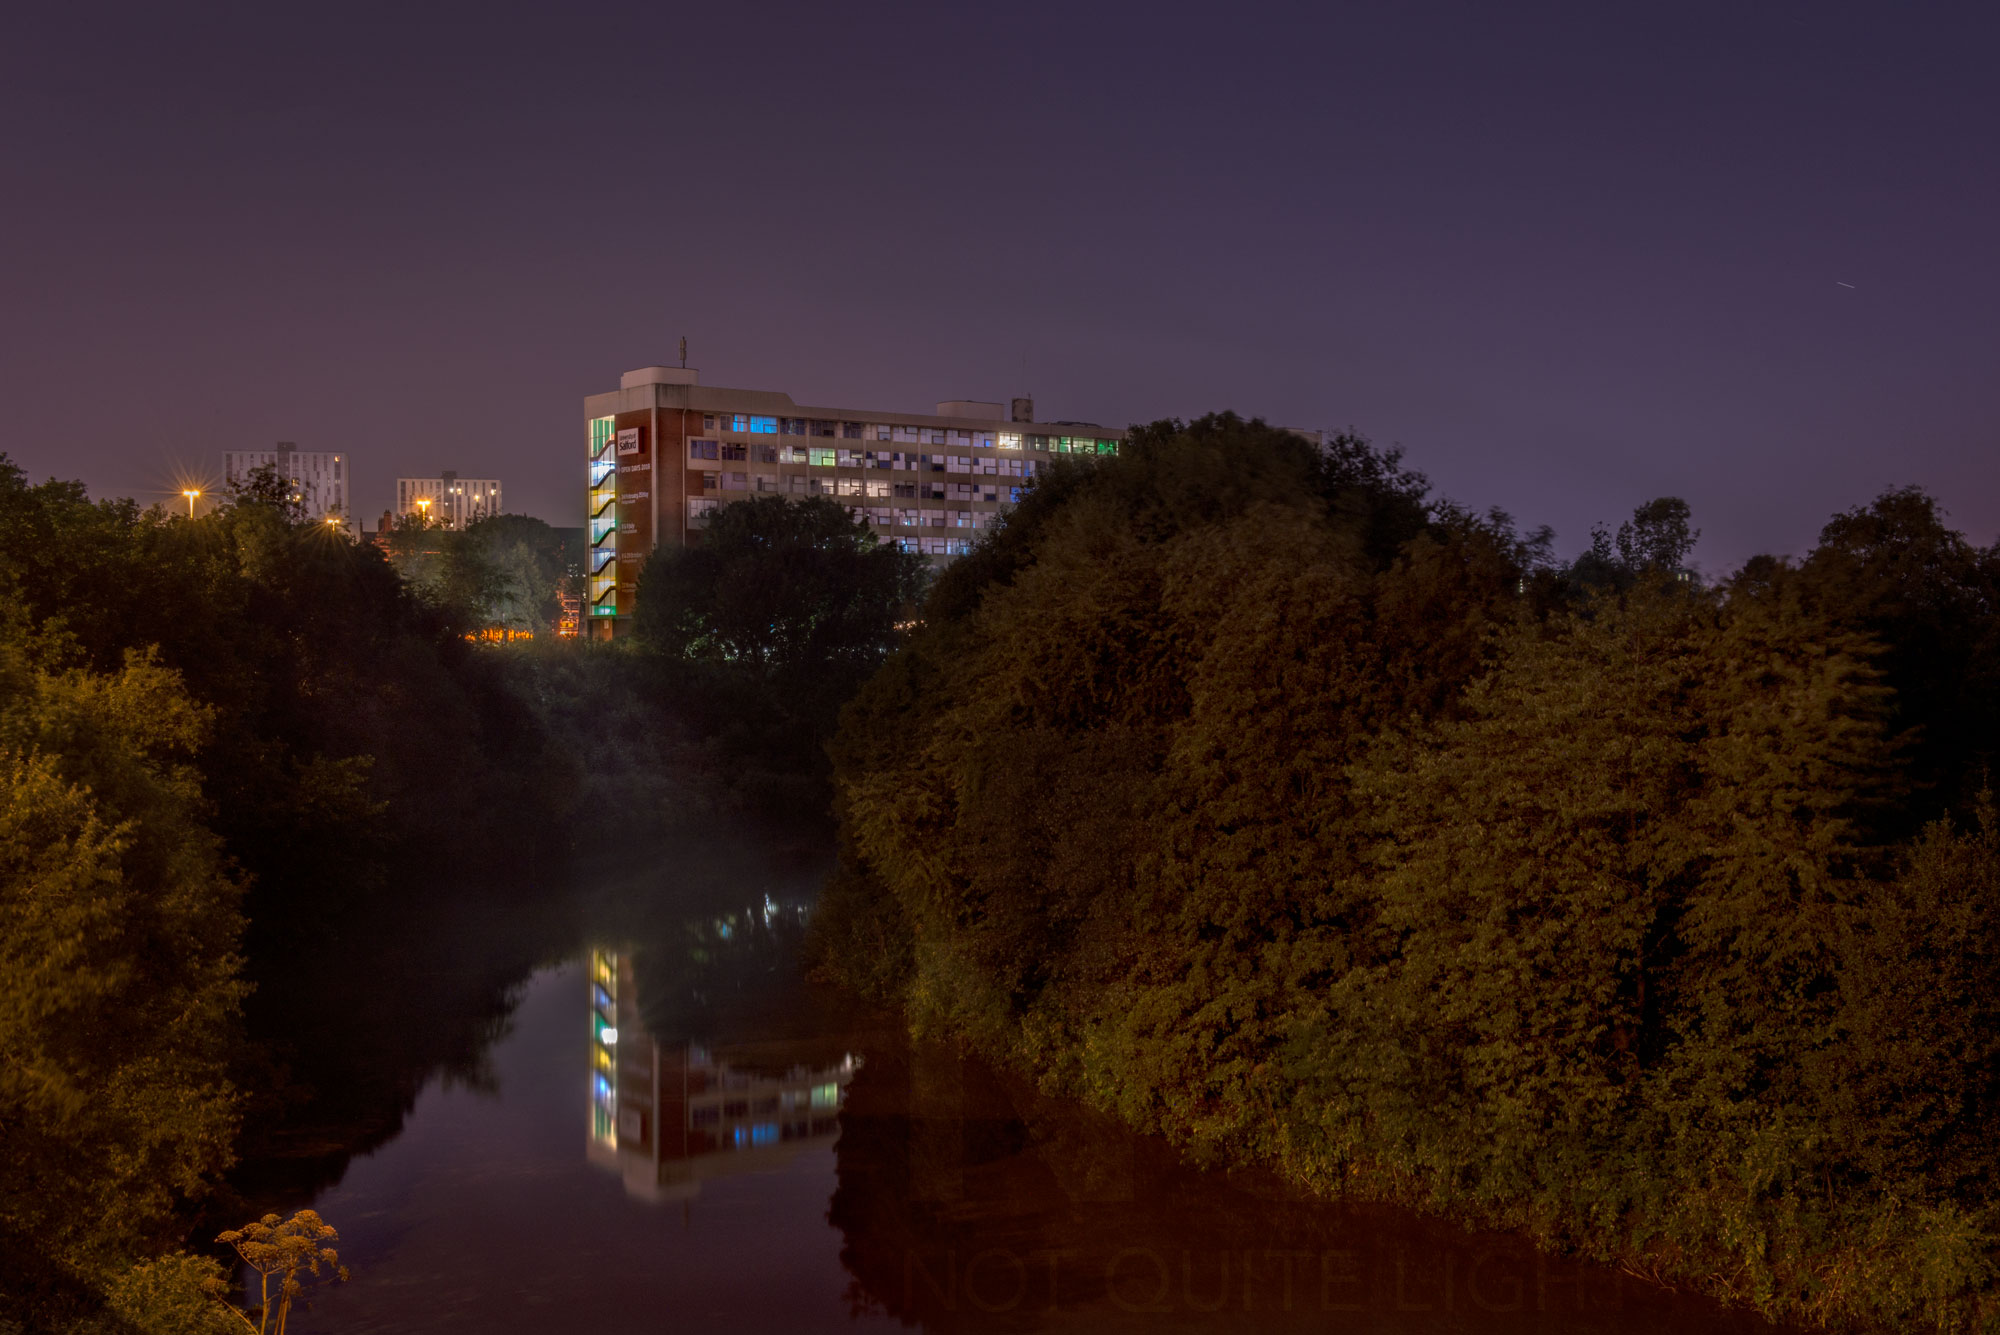 River Irwell Salford University